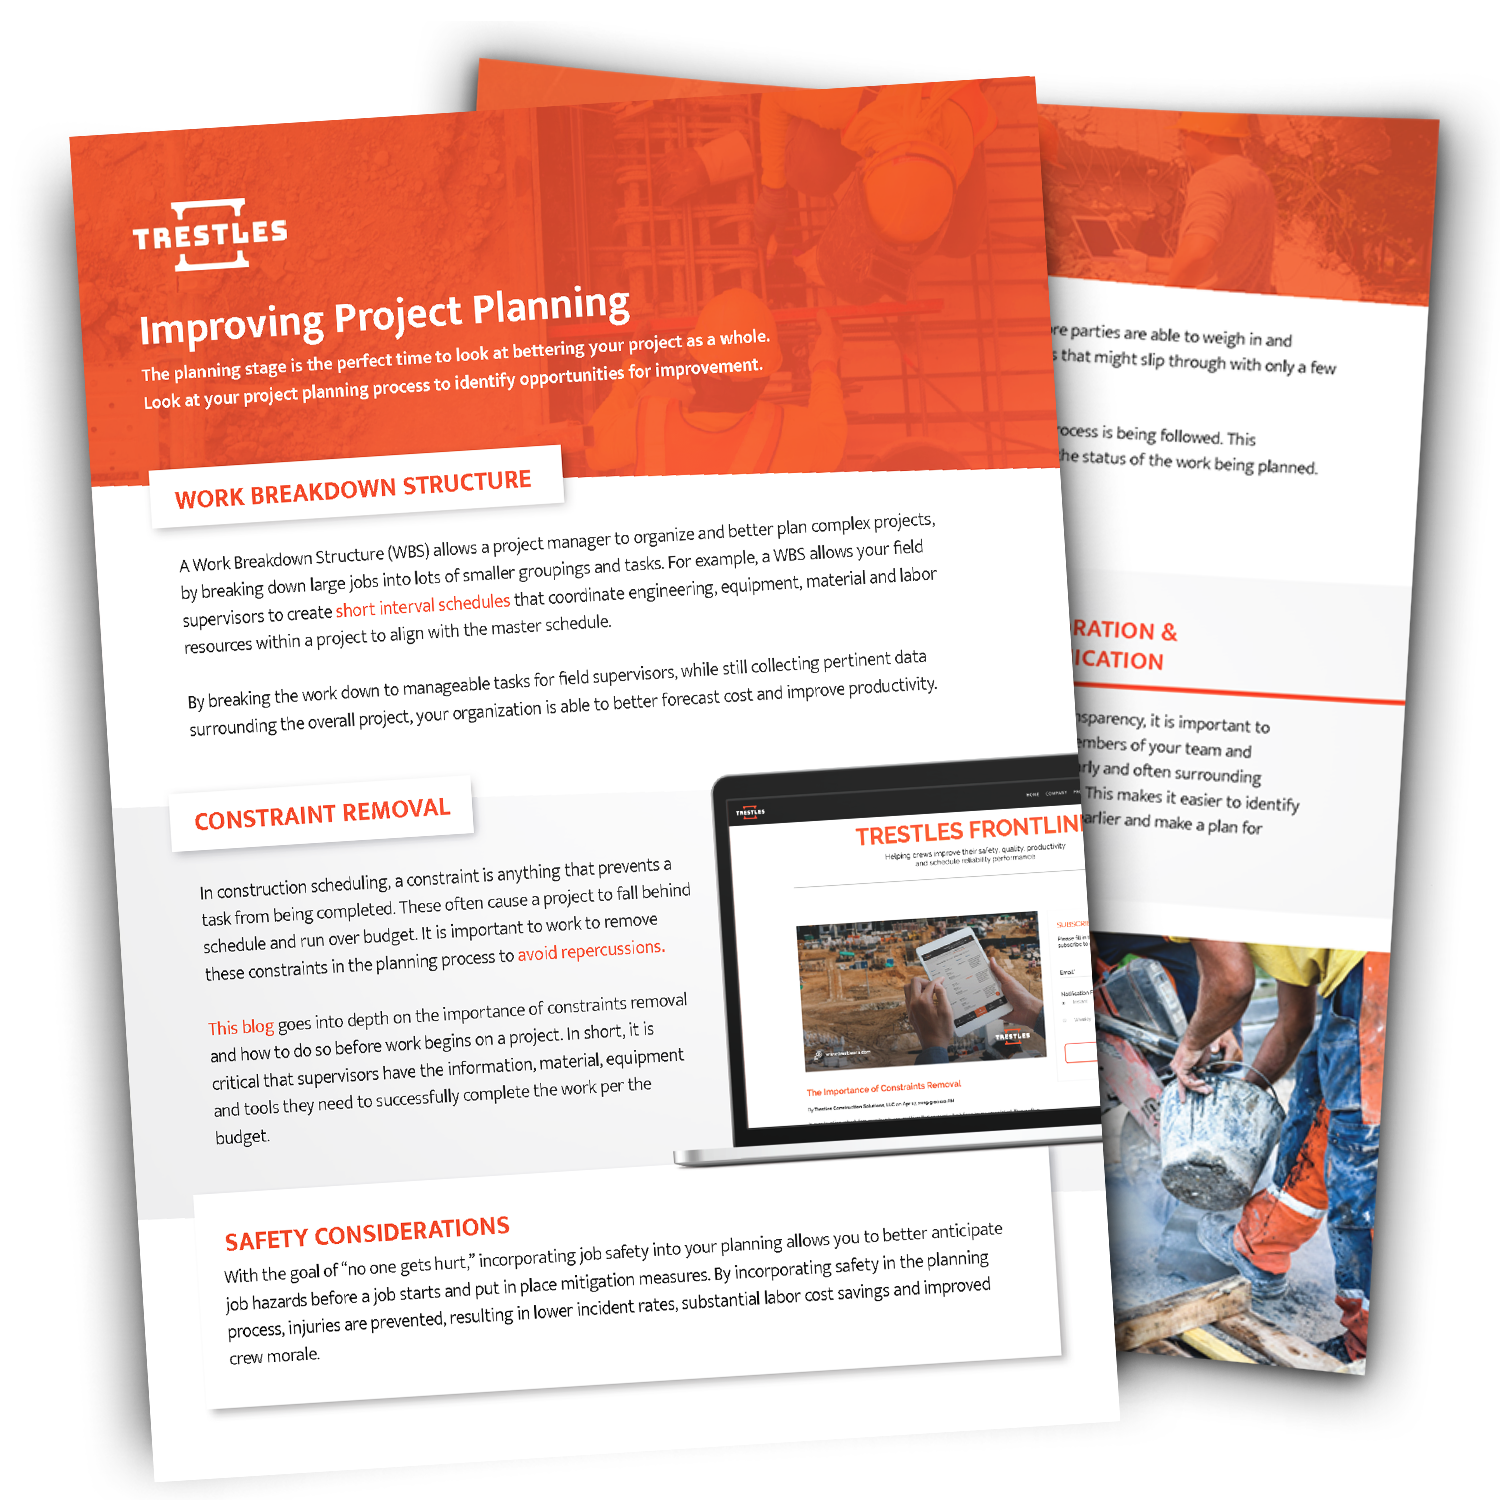 7 Keys to Improve Project Planning & Performance